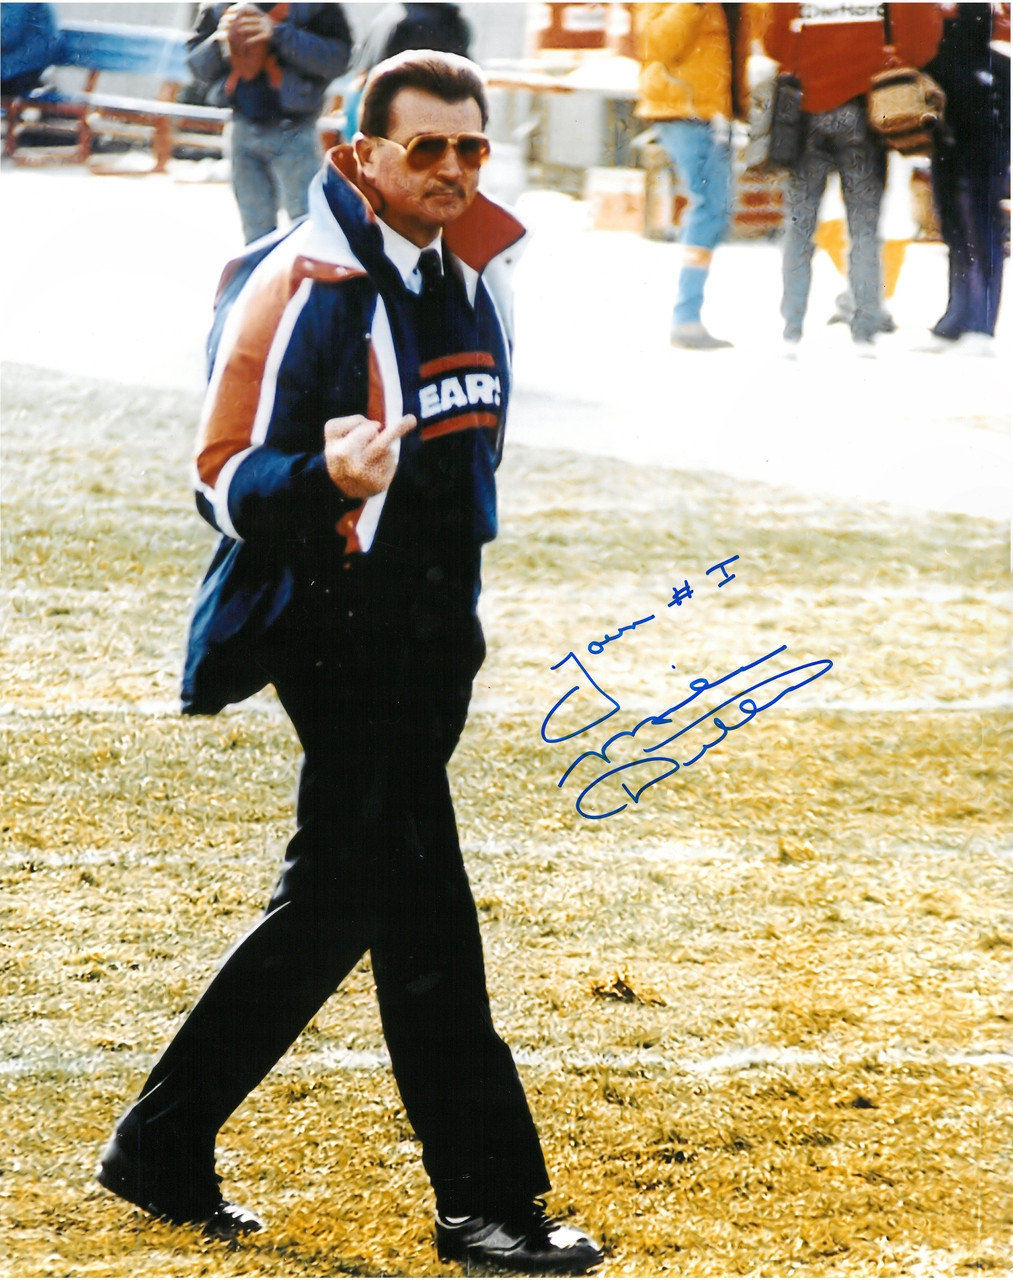 official photos f8afb 8e8d1 Mike Ditka Autographed Chicago Bears 16x20 Photo #1 - You're #1